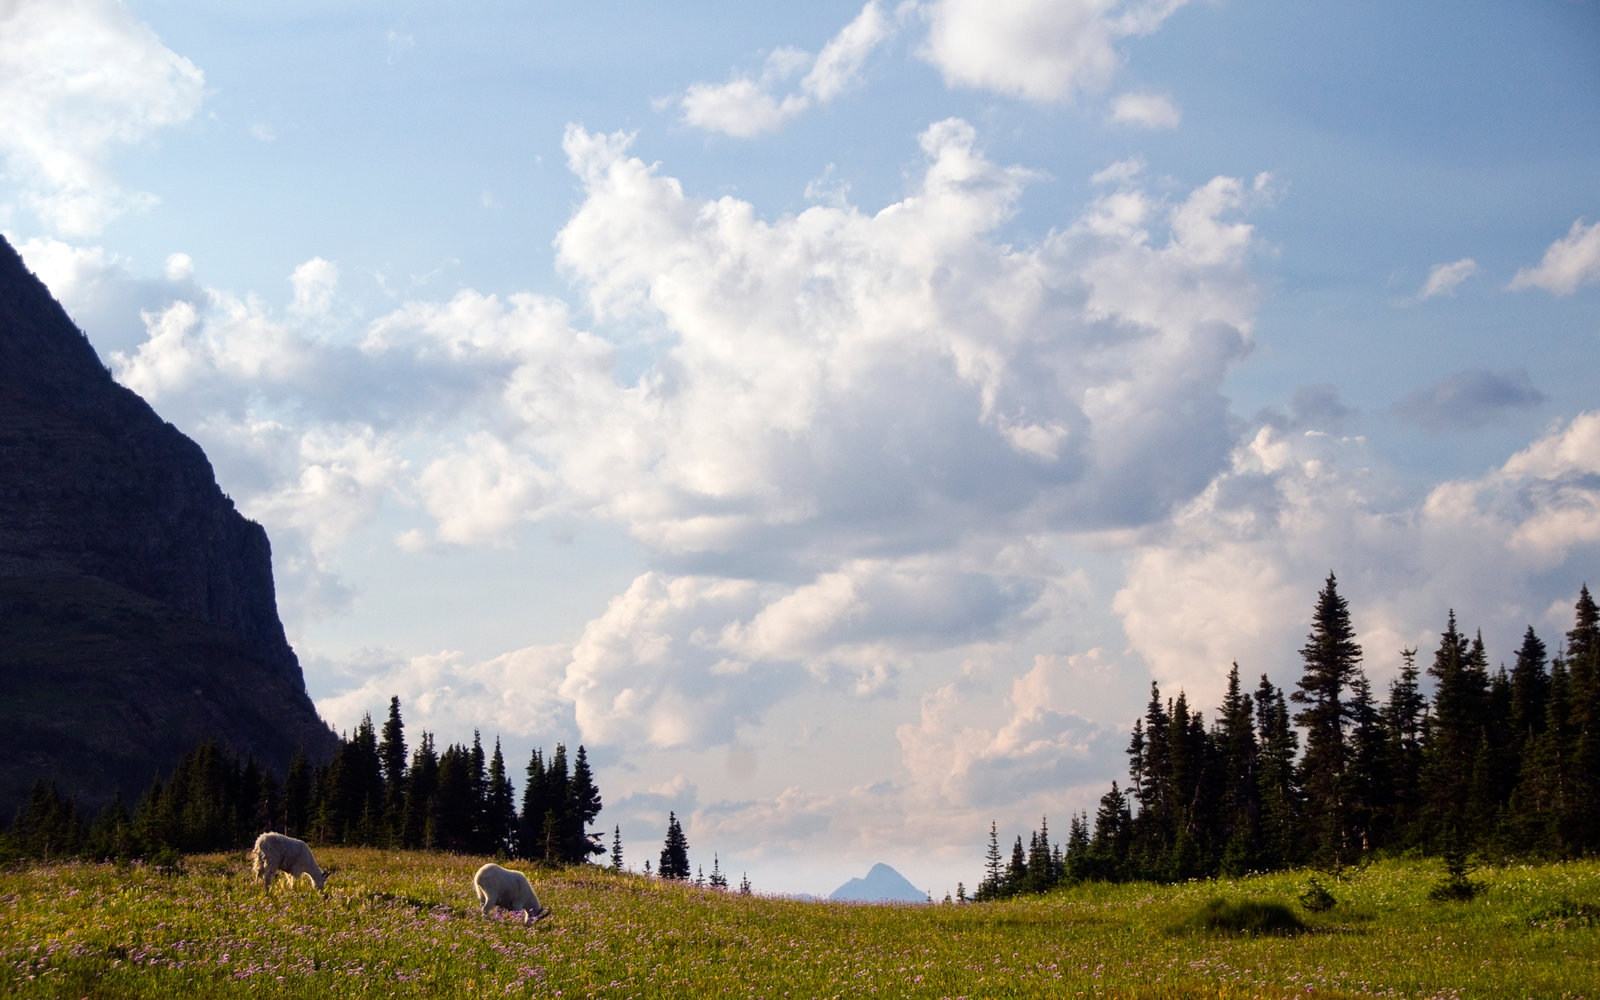 Two mountain goats graze in a field of wildflowers in Glacier National Park Montana